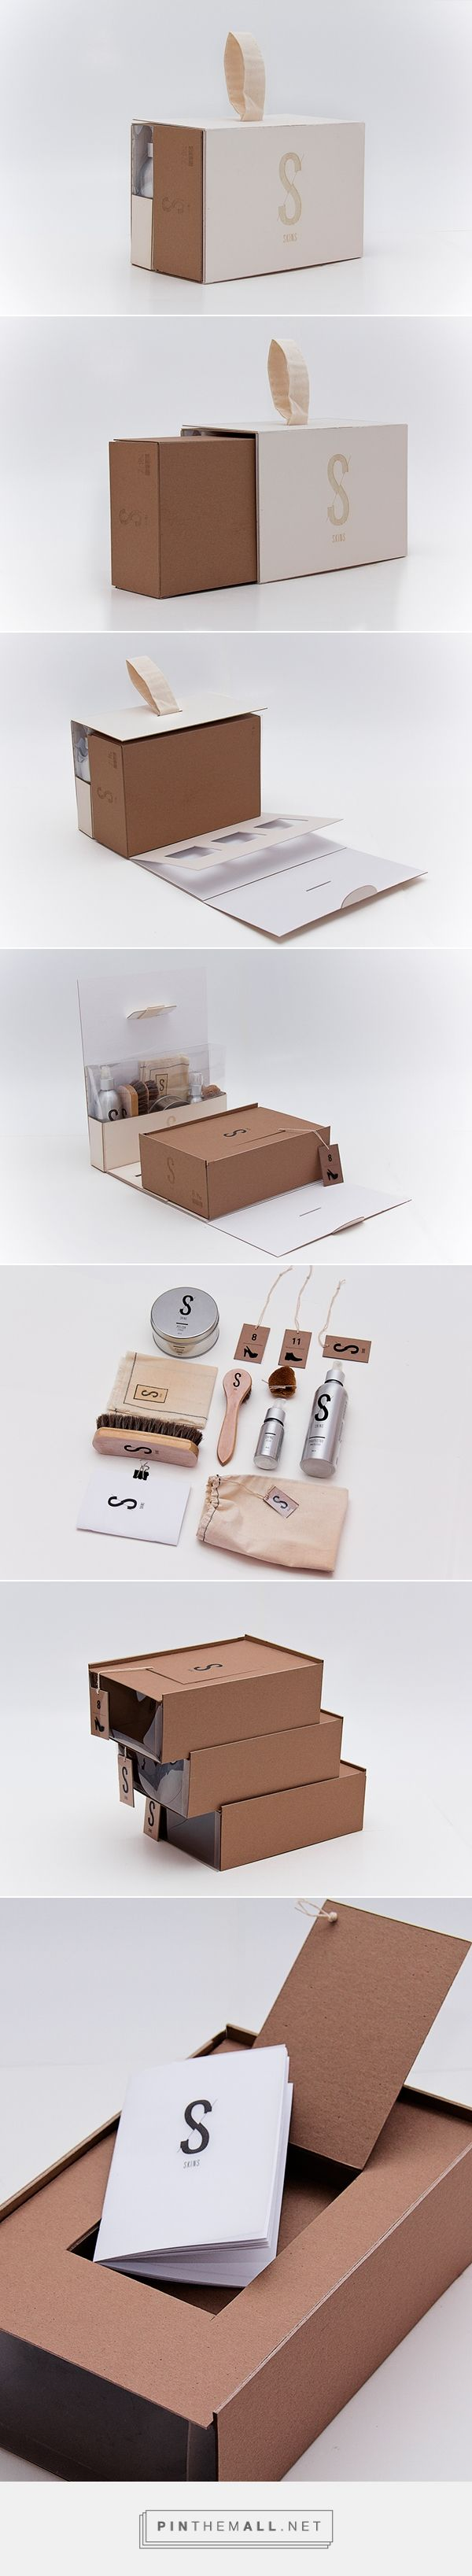 best fresh packing images on pinterest boxes candles and